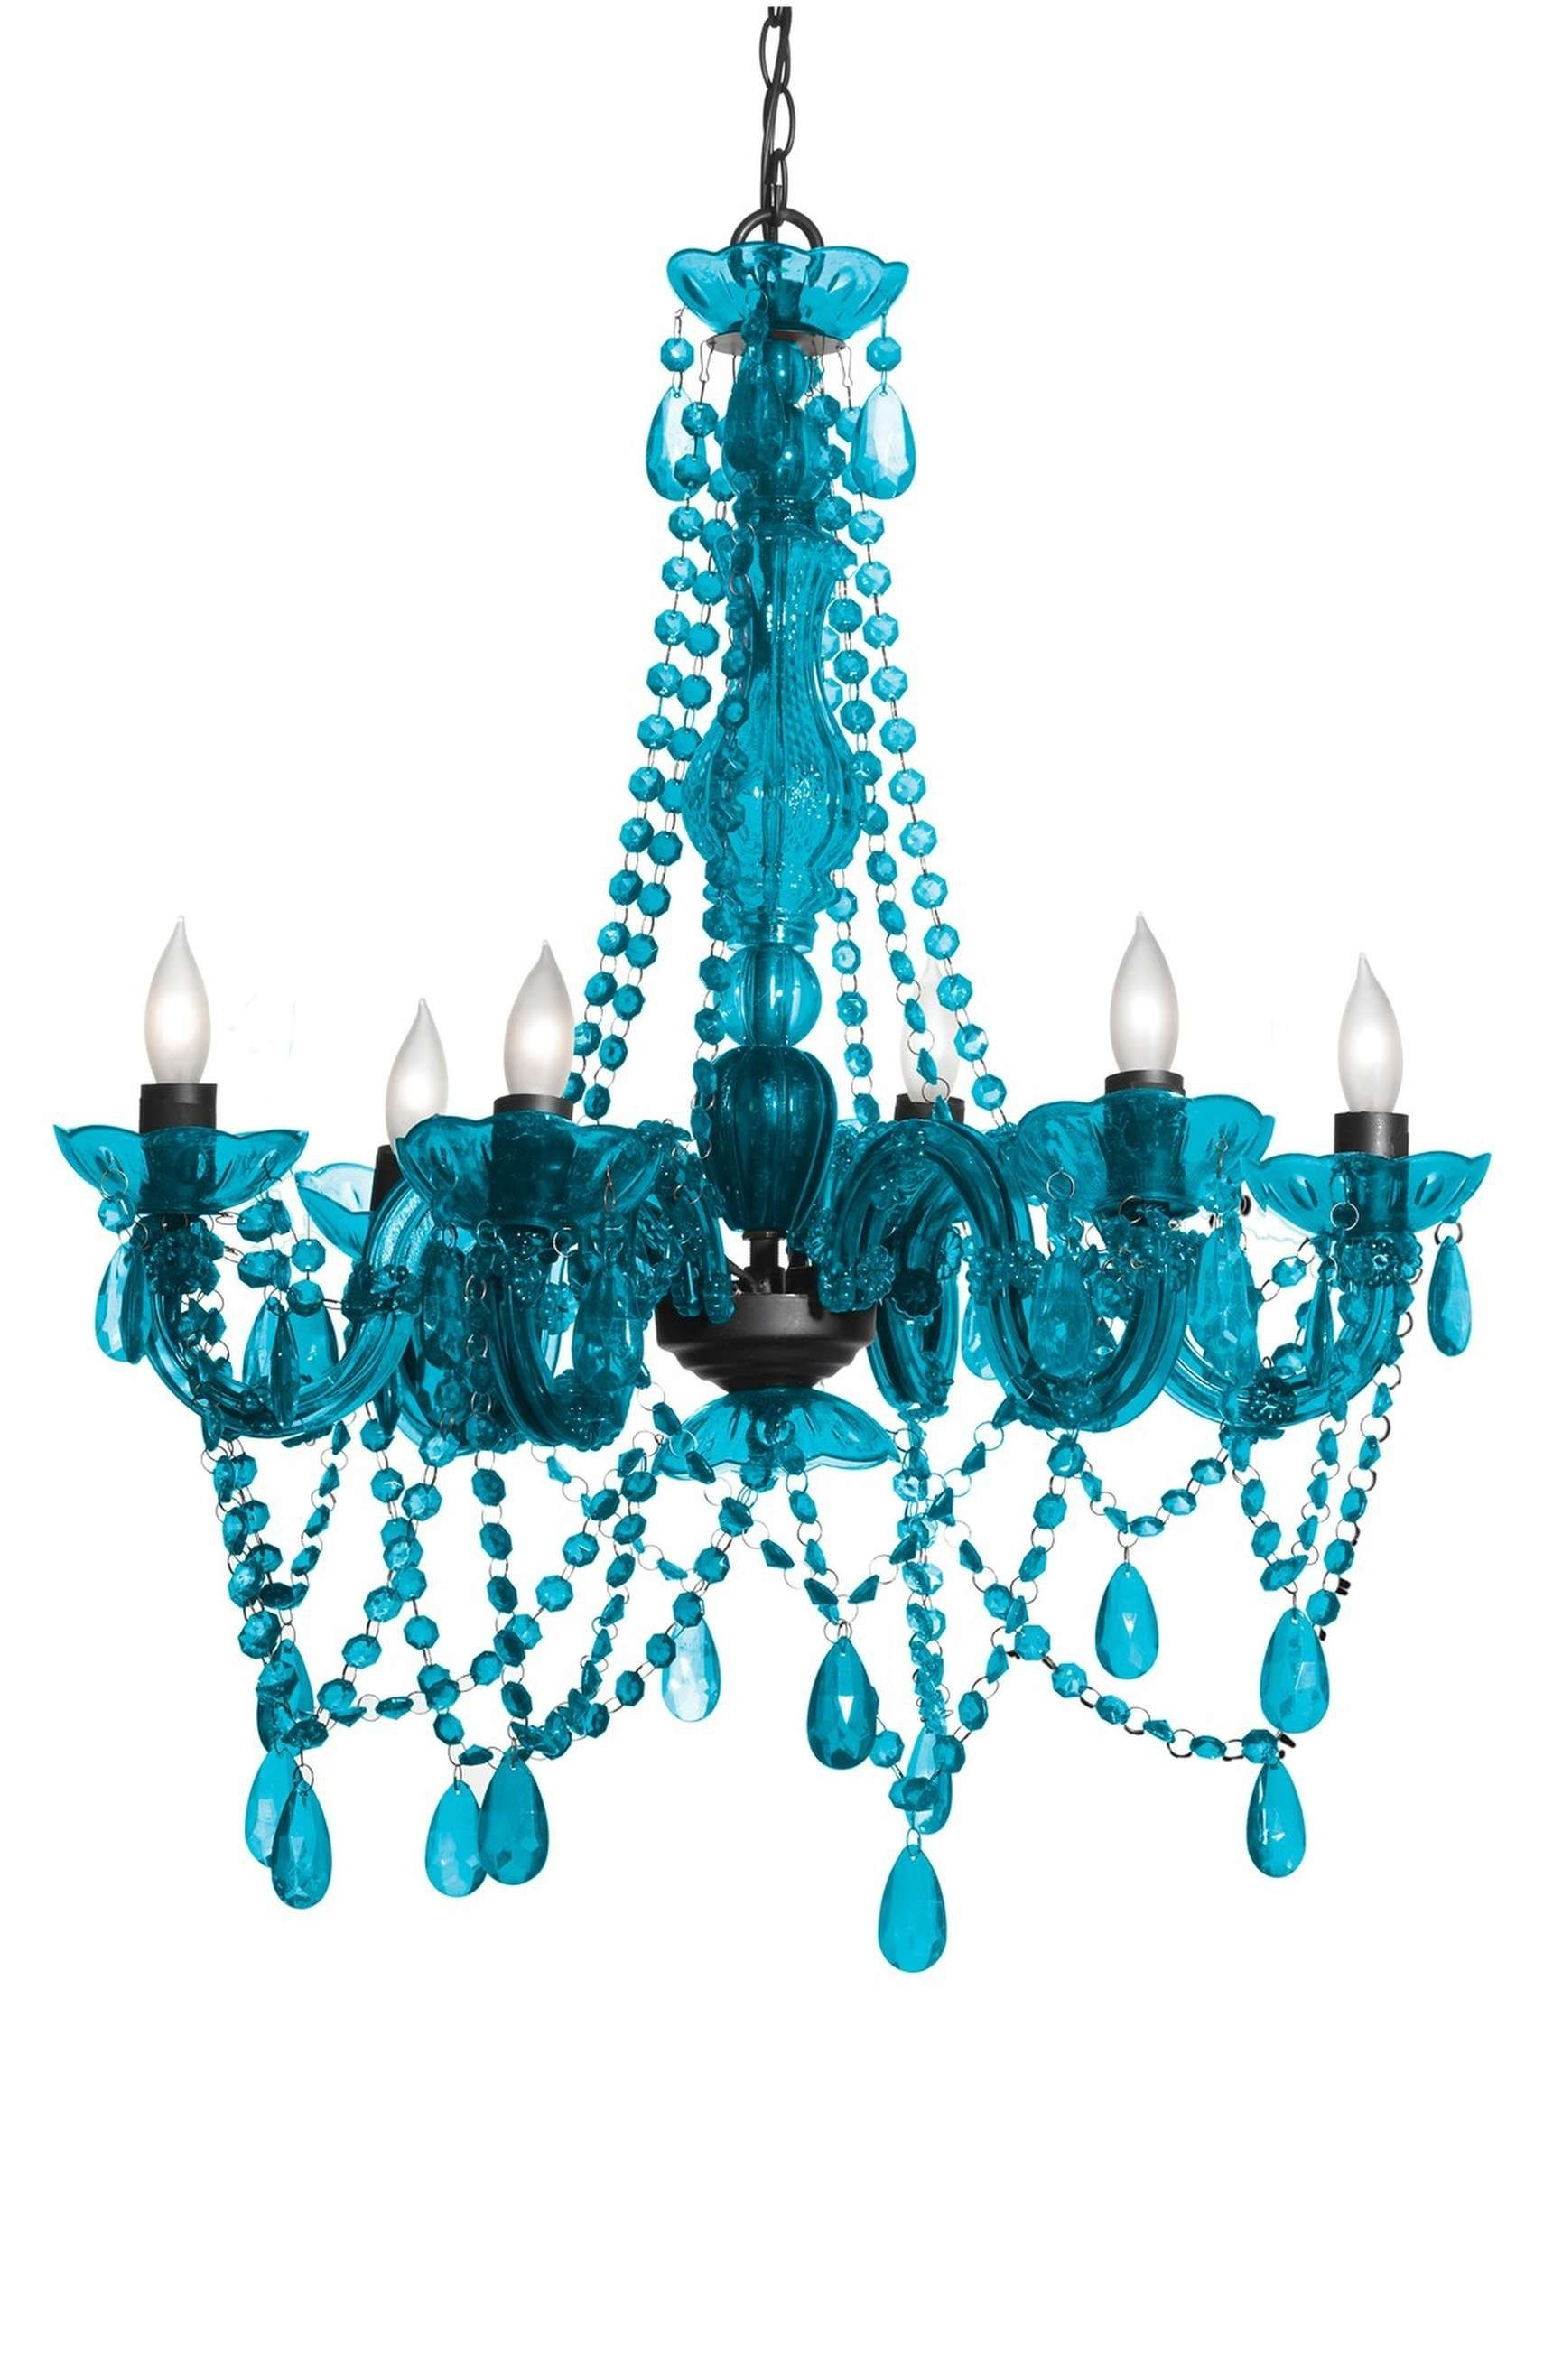 Turquoise Chandelier Crystals For Most Current Crystal Chandelier Designs – Modern Chandeliers (View 18 of 20)